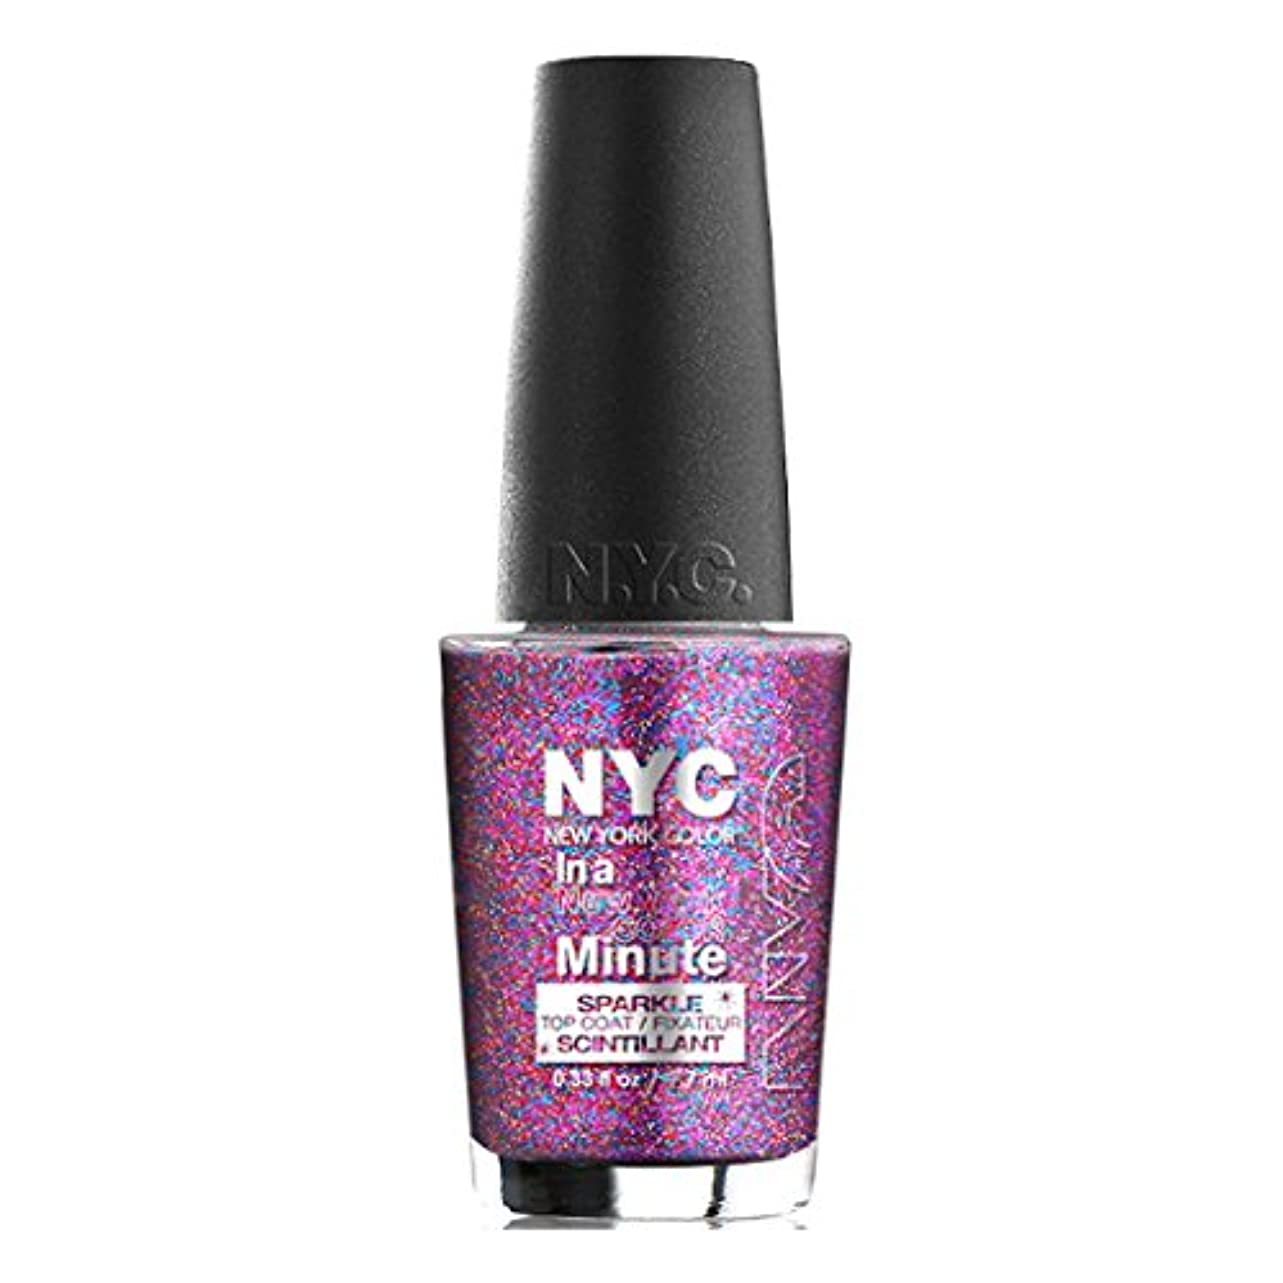 特権ツーリスト報復する(3 Pack) NYC In A New York Color Minute Sparkle Top Coat - Big City Dazzle (並行輸入品)